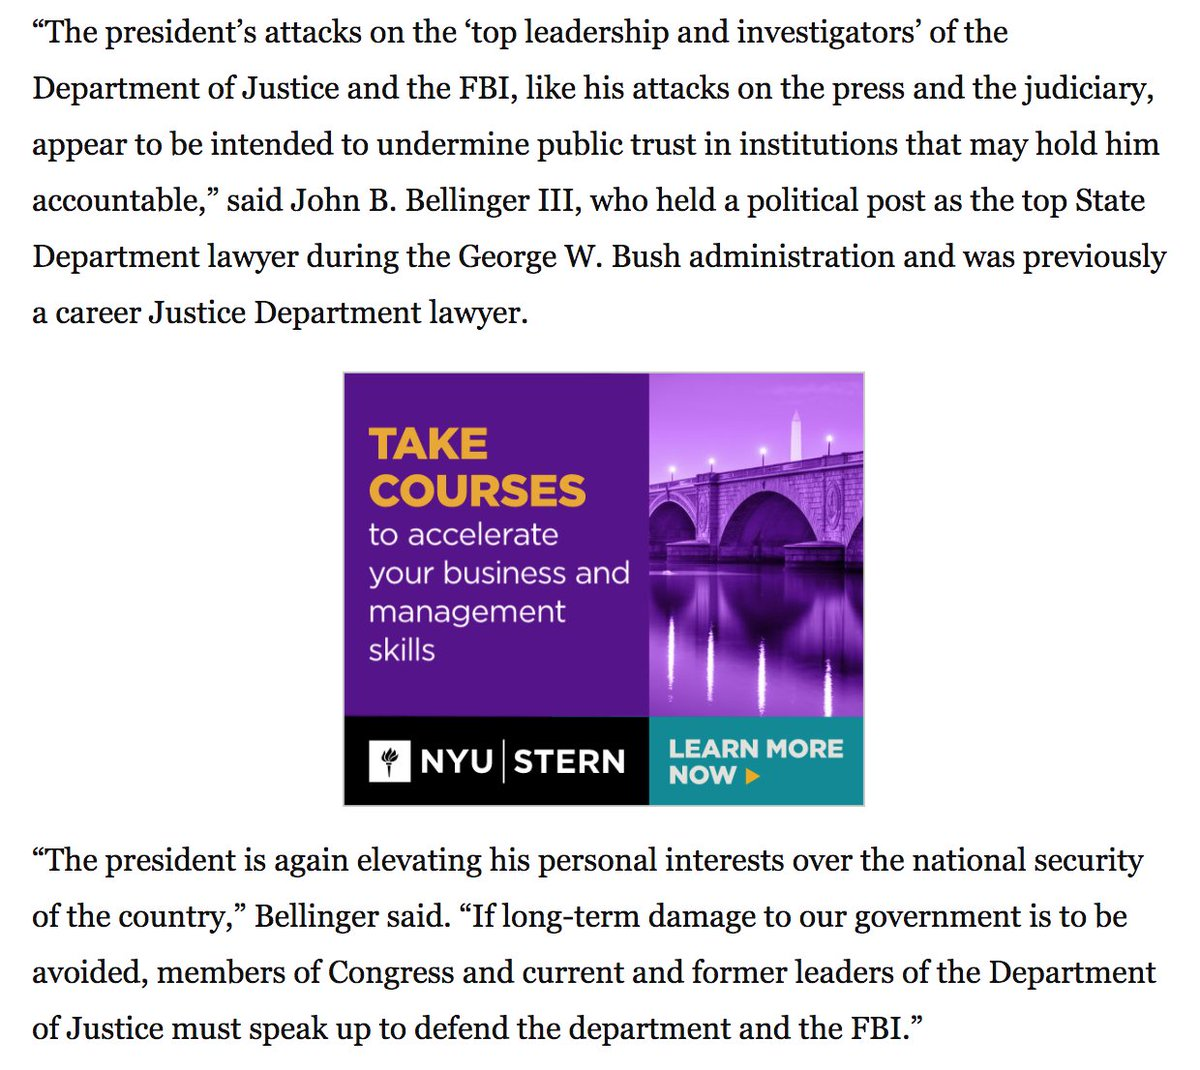 benjamin wittes on two years ago john bellinger was to   threat to u s national security a short essay that profoundly influenced my thinking on the subject unlike a lot of republicans he has continued